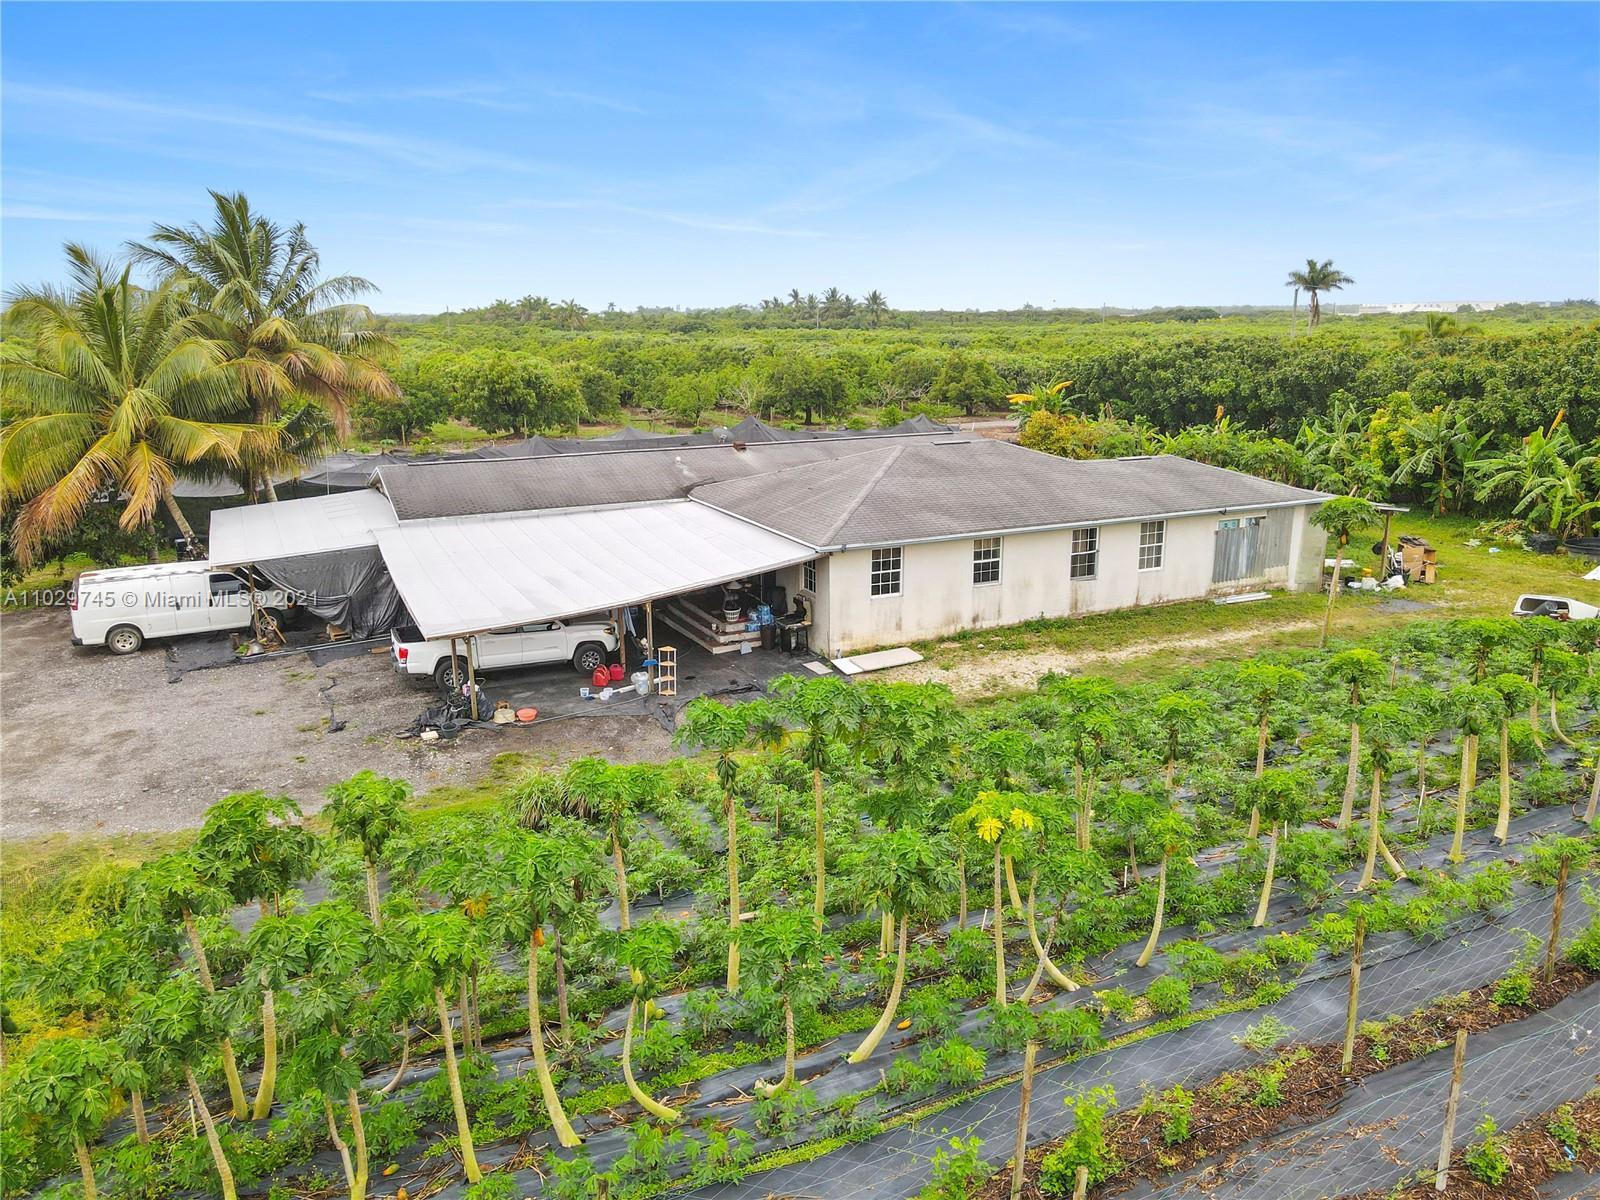 THAI PLANTATION ON  APPROX 4.5 ACRES WITH LARGE 4 BED 3 BATH FARMHOUSE..THE HOUSE COULD BE A GREAT FLIP.. THE FARM  FEATURES:THAI BAI TIER, DOKKRE, BAMBOO, LONG BEAN, GREEN BEAN , THAI WHITE FLOWER, LONGAN,THAI BASIL ,PAPAYA, SURGAR APPLE, CAMITO,THAI BANANA,YUCCA LEAF, JACK FRUIT PLUS ON SITE.  ALSO INCLUDED IS THE VAN,.COOLER,MOWER, GOLF CART.ETC. THIS IS A SUPER OPPORTUNITY TO HAVE INSTANT INCOME...